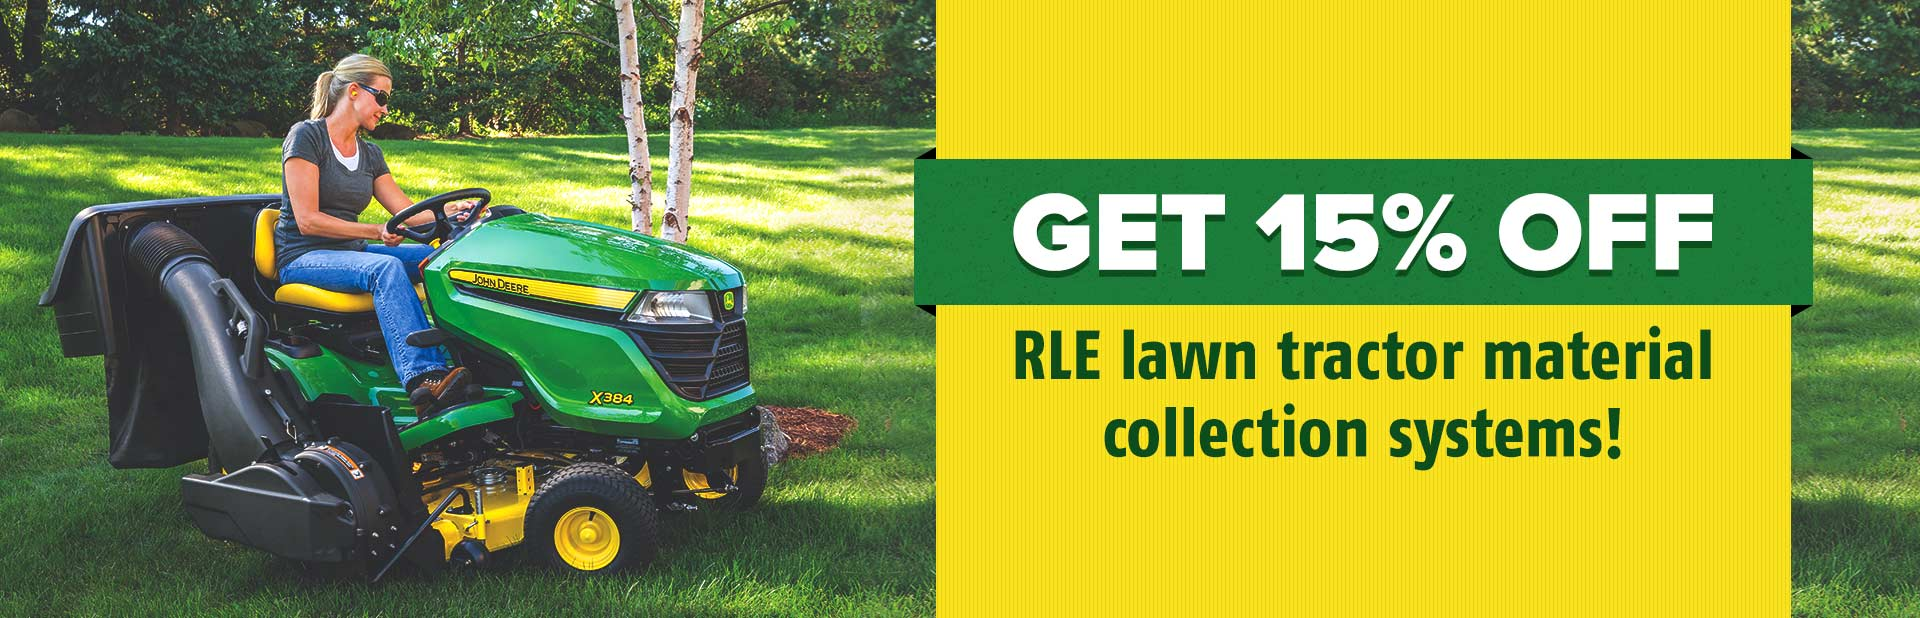 Get 15% off RLE lawn tractor material collection systems!